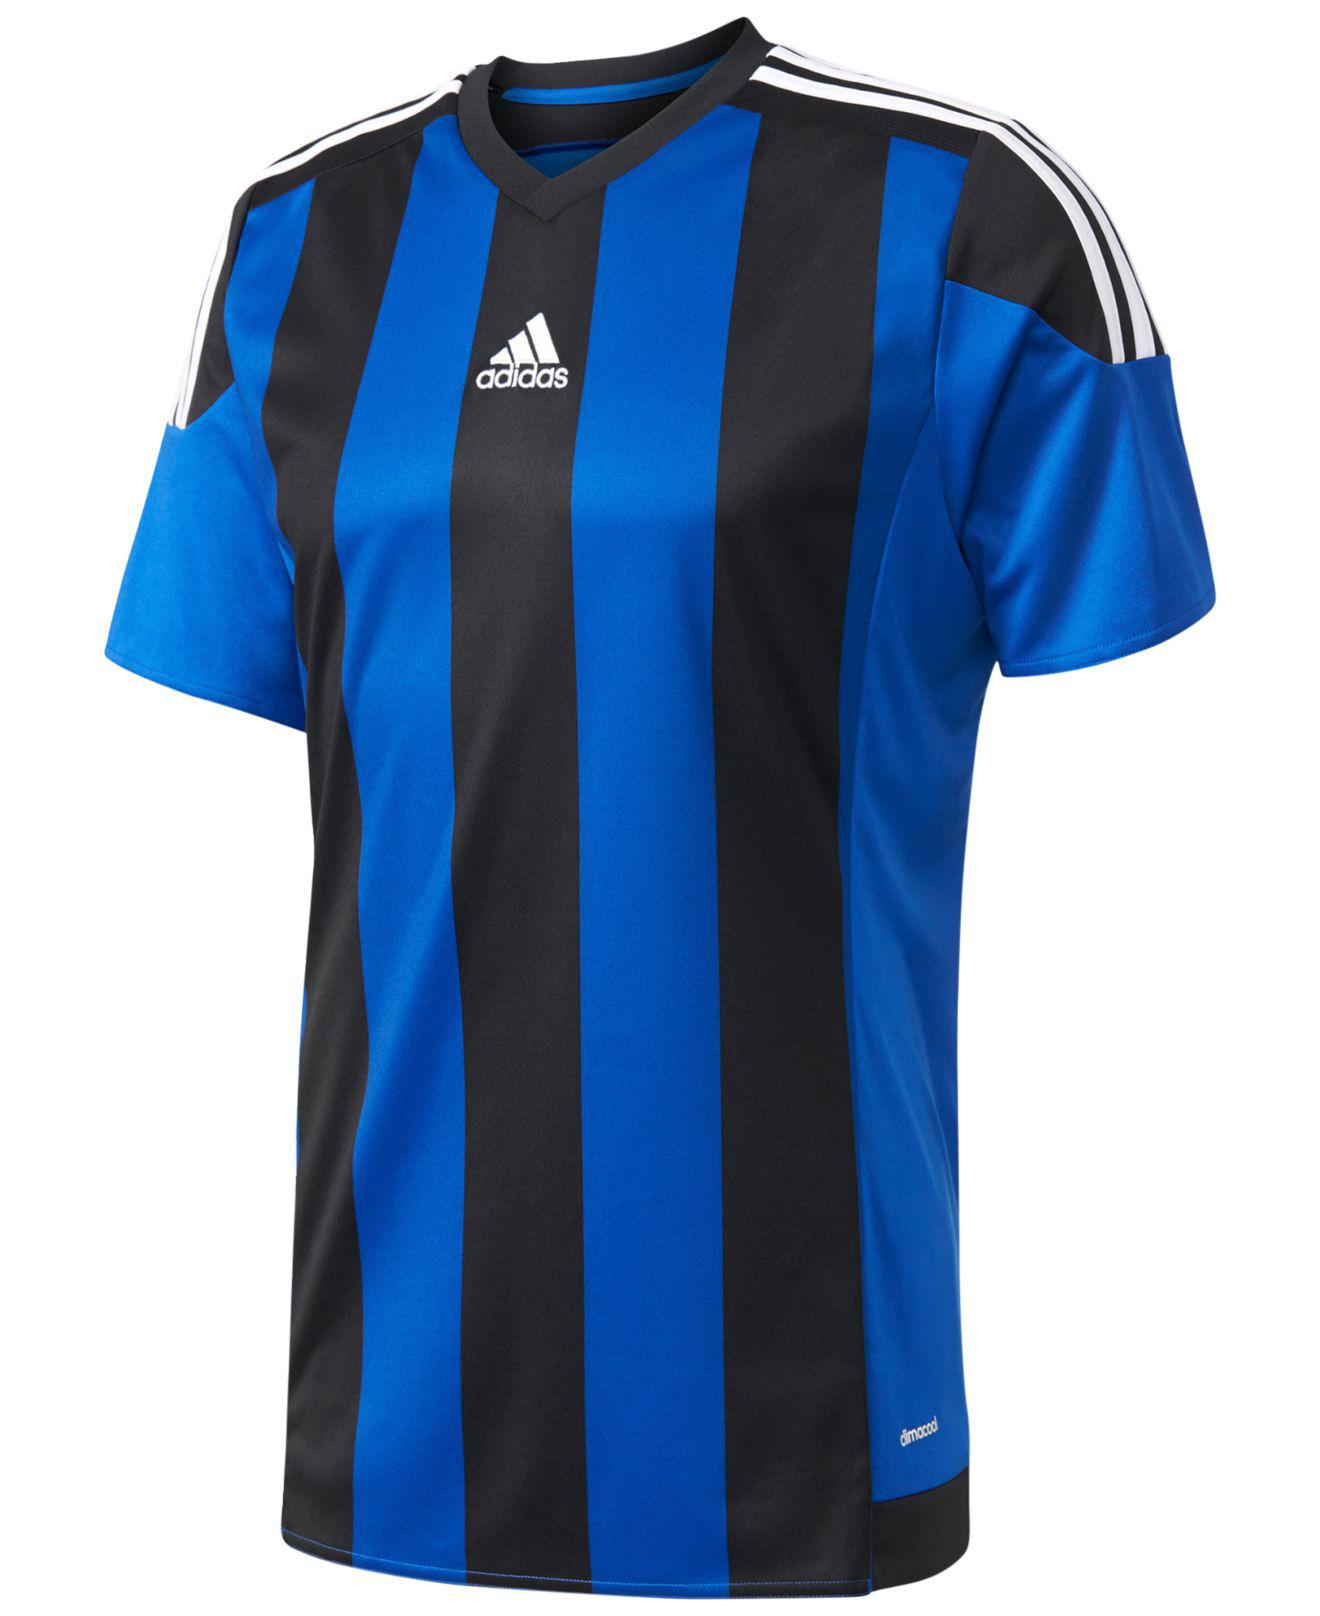 adidas Synthetic Climacool® Striped Soccer Jersey in Blue/Black ...